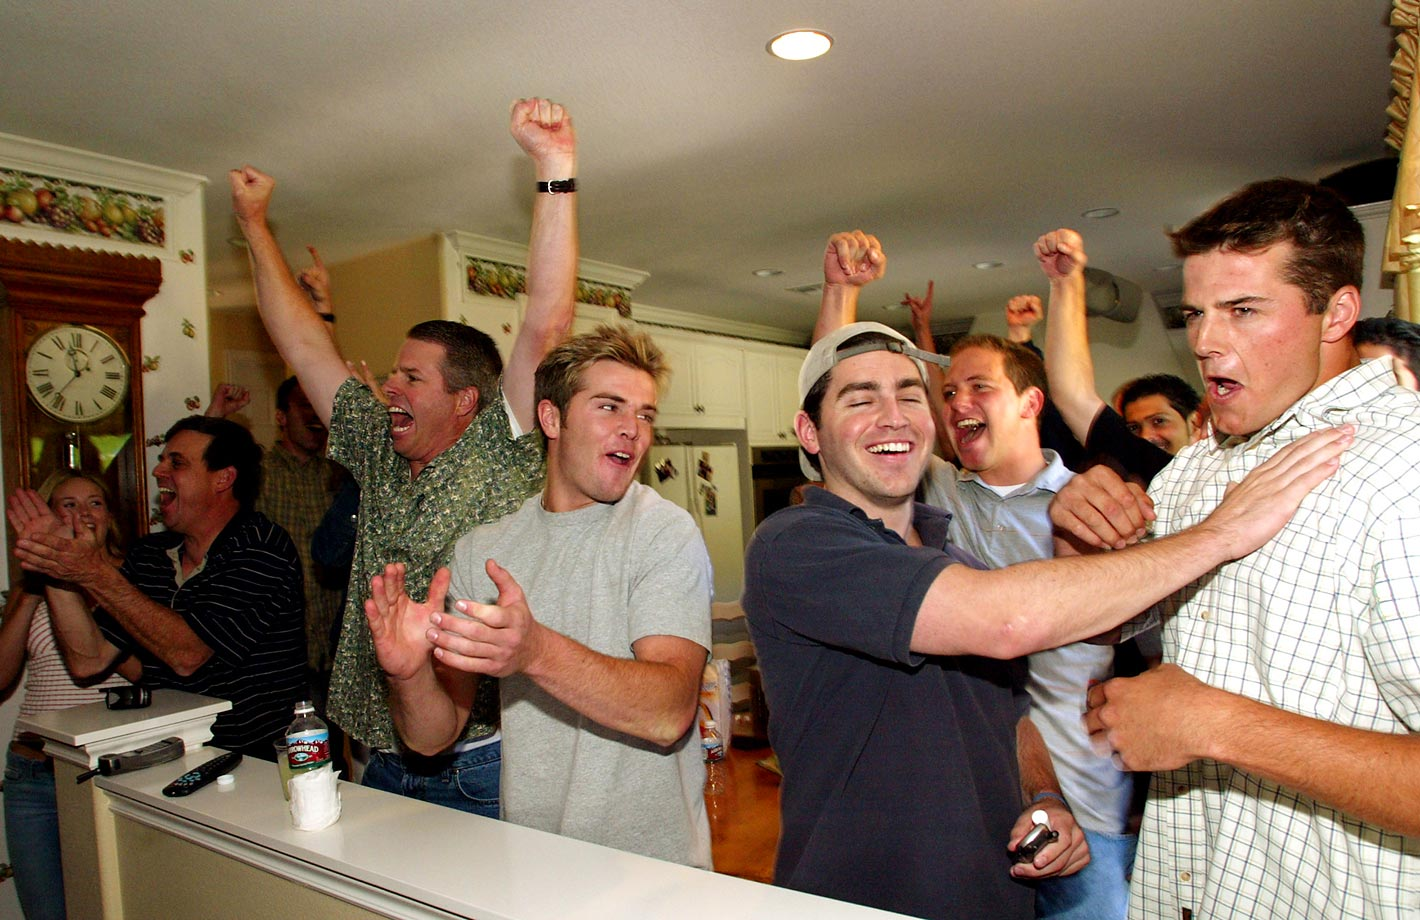 California quarterback Kyle Boller, far right, reacts as he learns that he has been drafted 19th by the Baltimore Ravens in the 2003 draft.